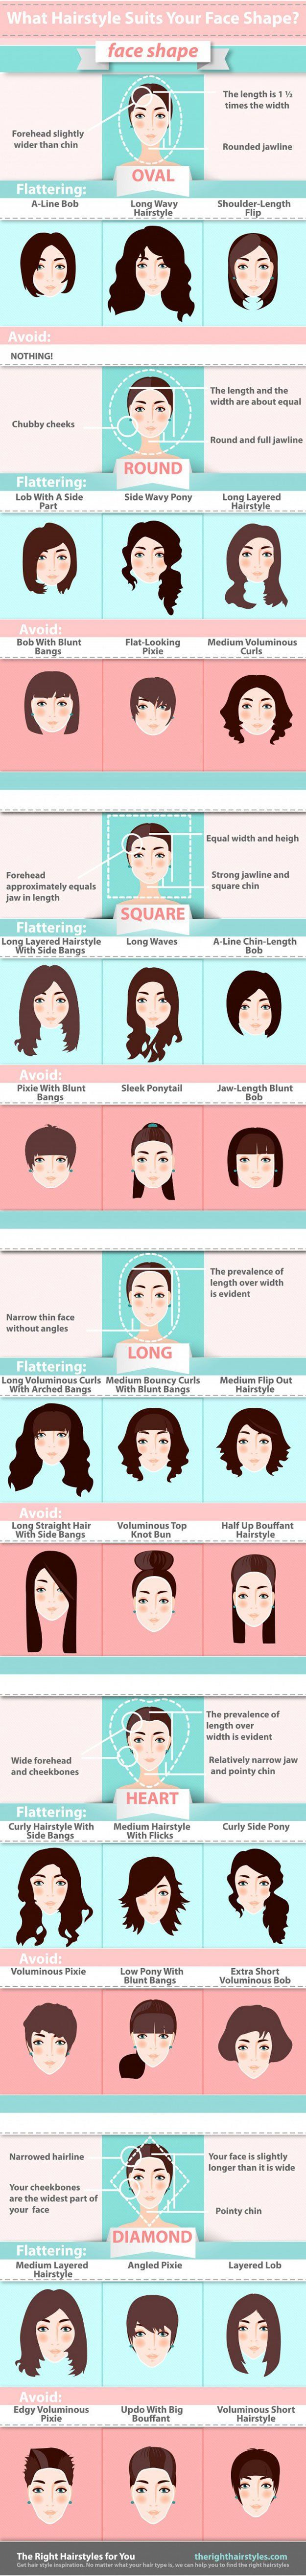 Beauty Basics: Best Hairstyles For Your Face ShapeFacebookGoogle+InstagramPinterestTumblrTwitterYouTube